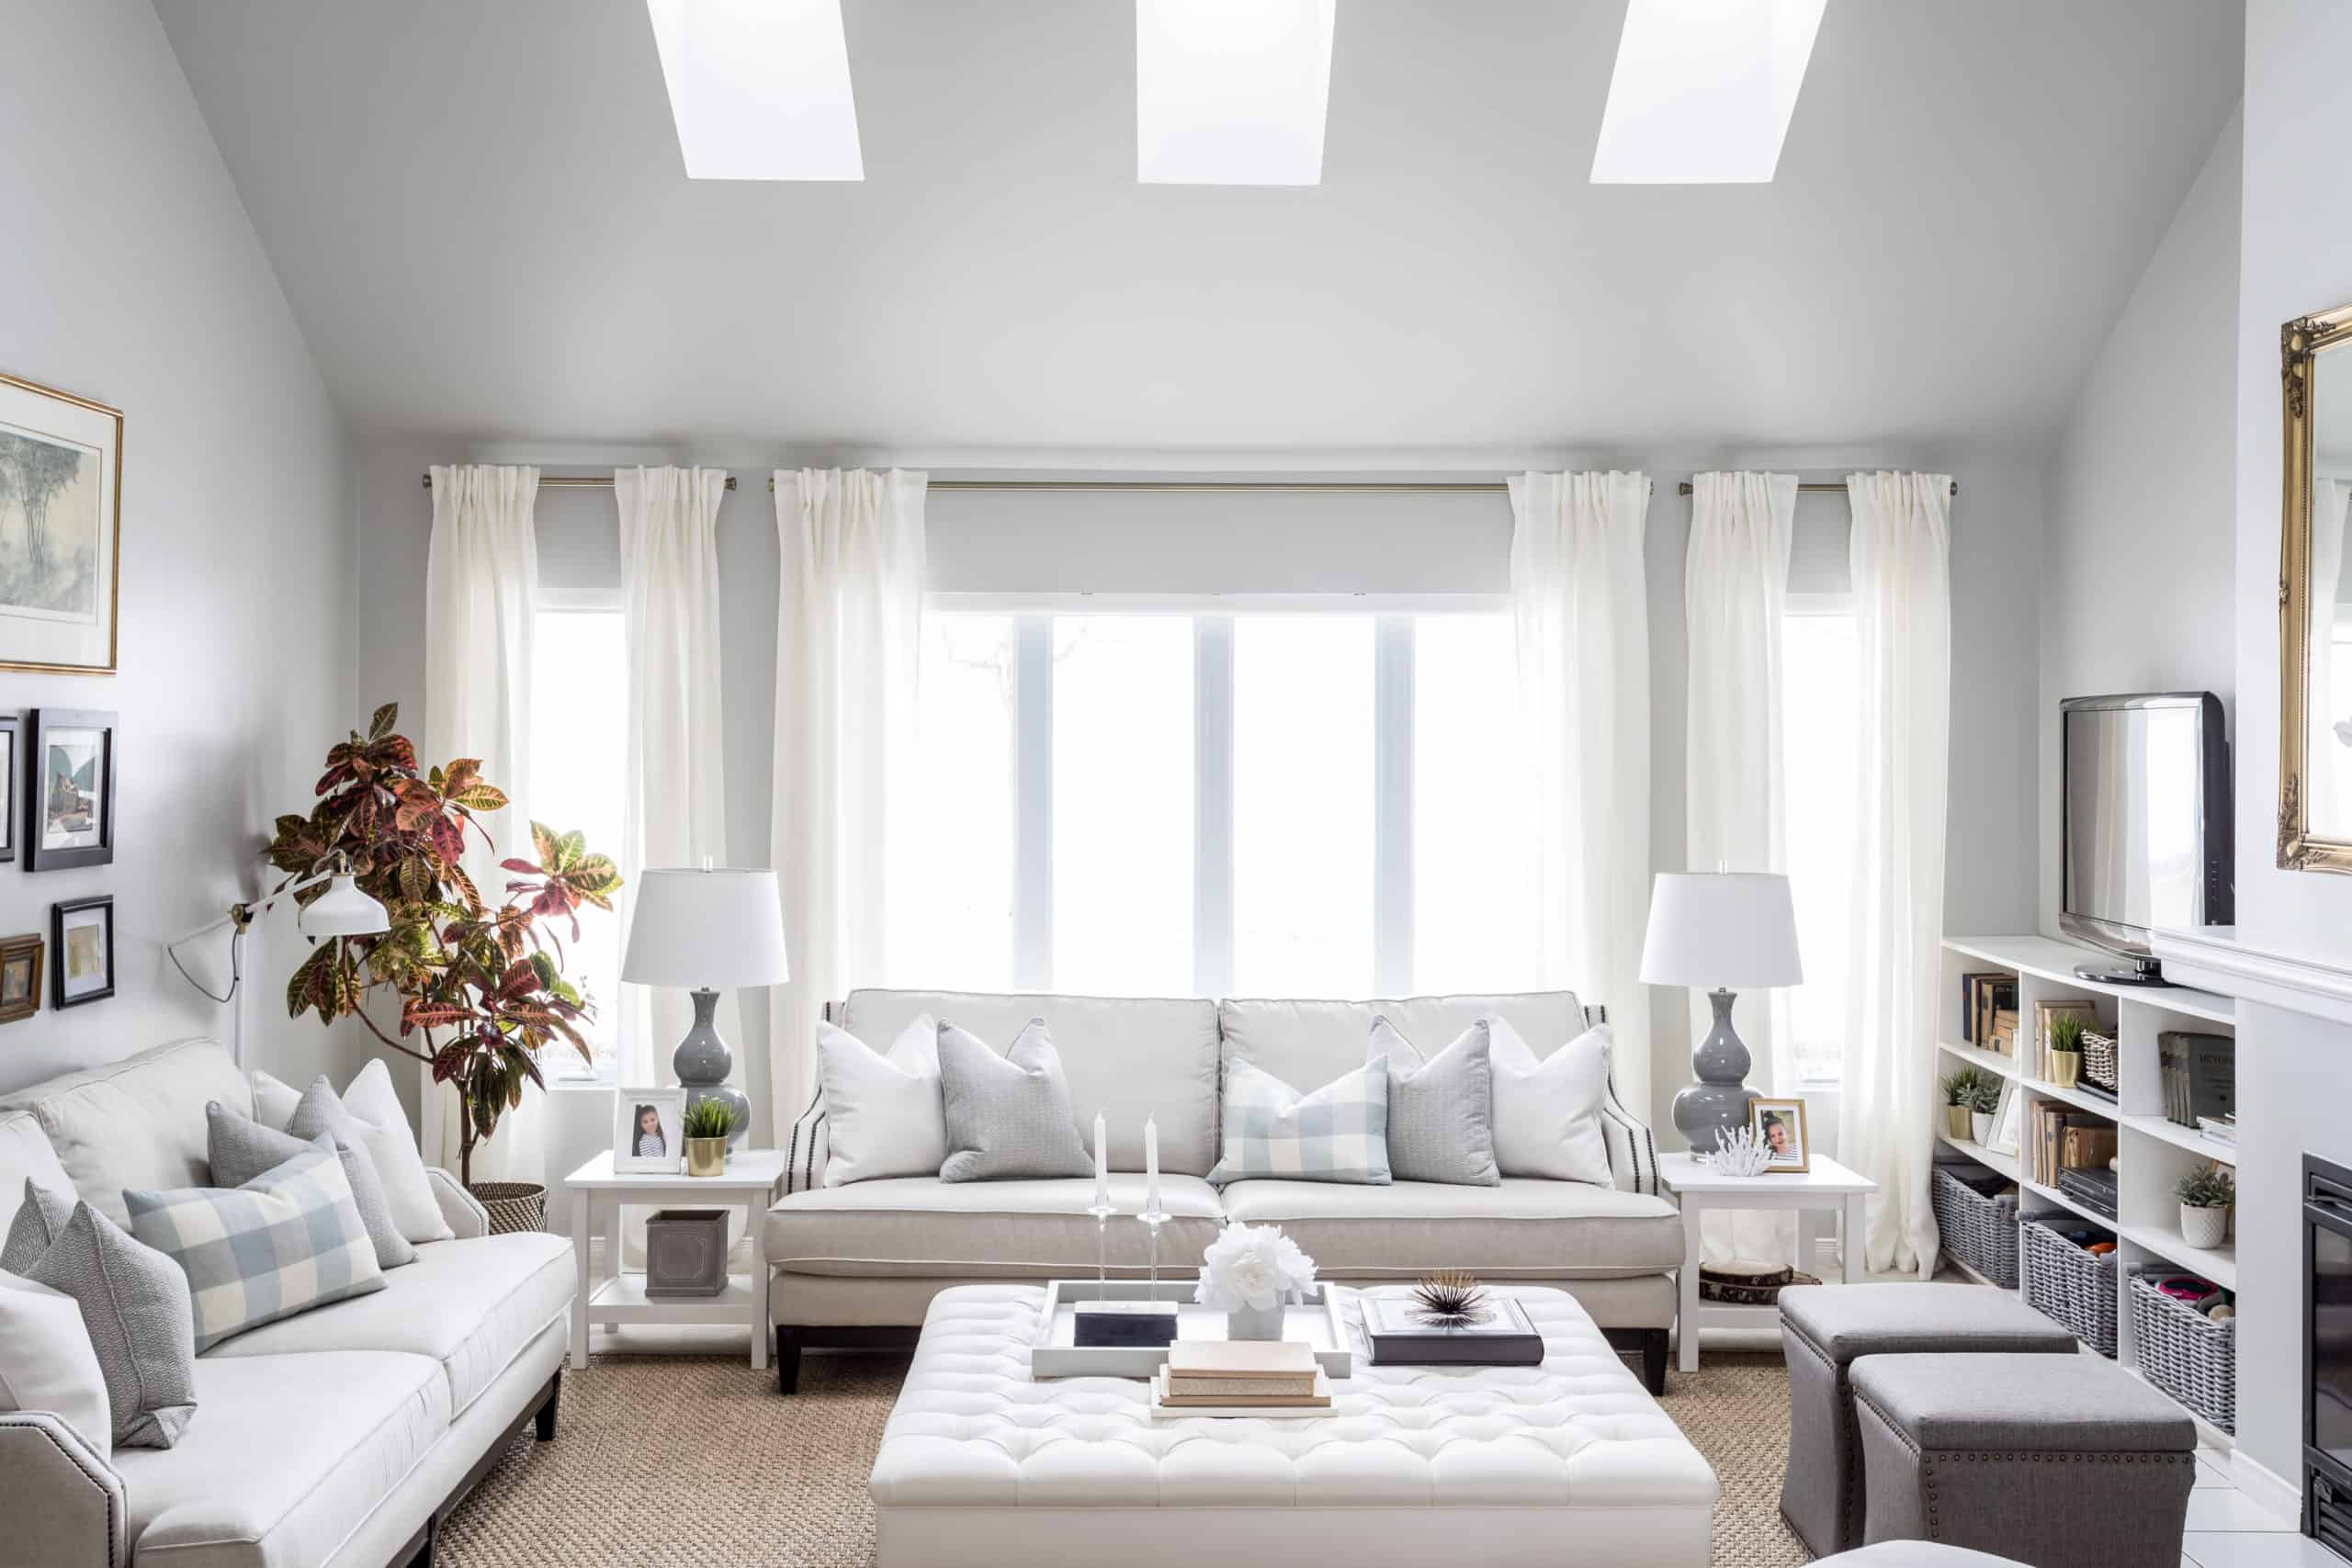 White couch against a bright window